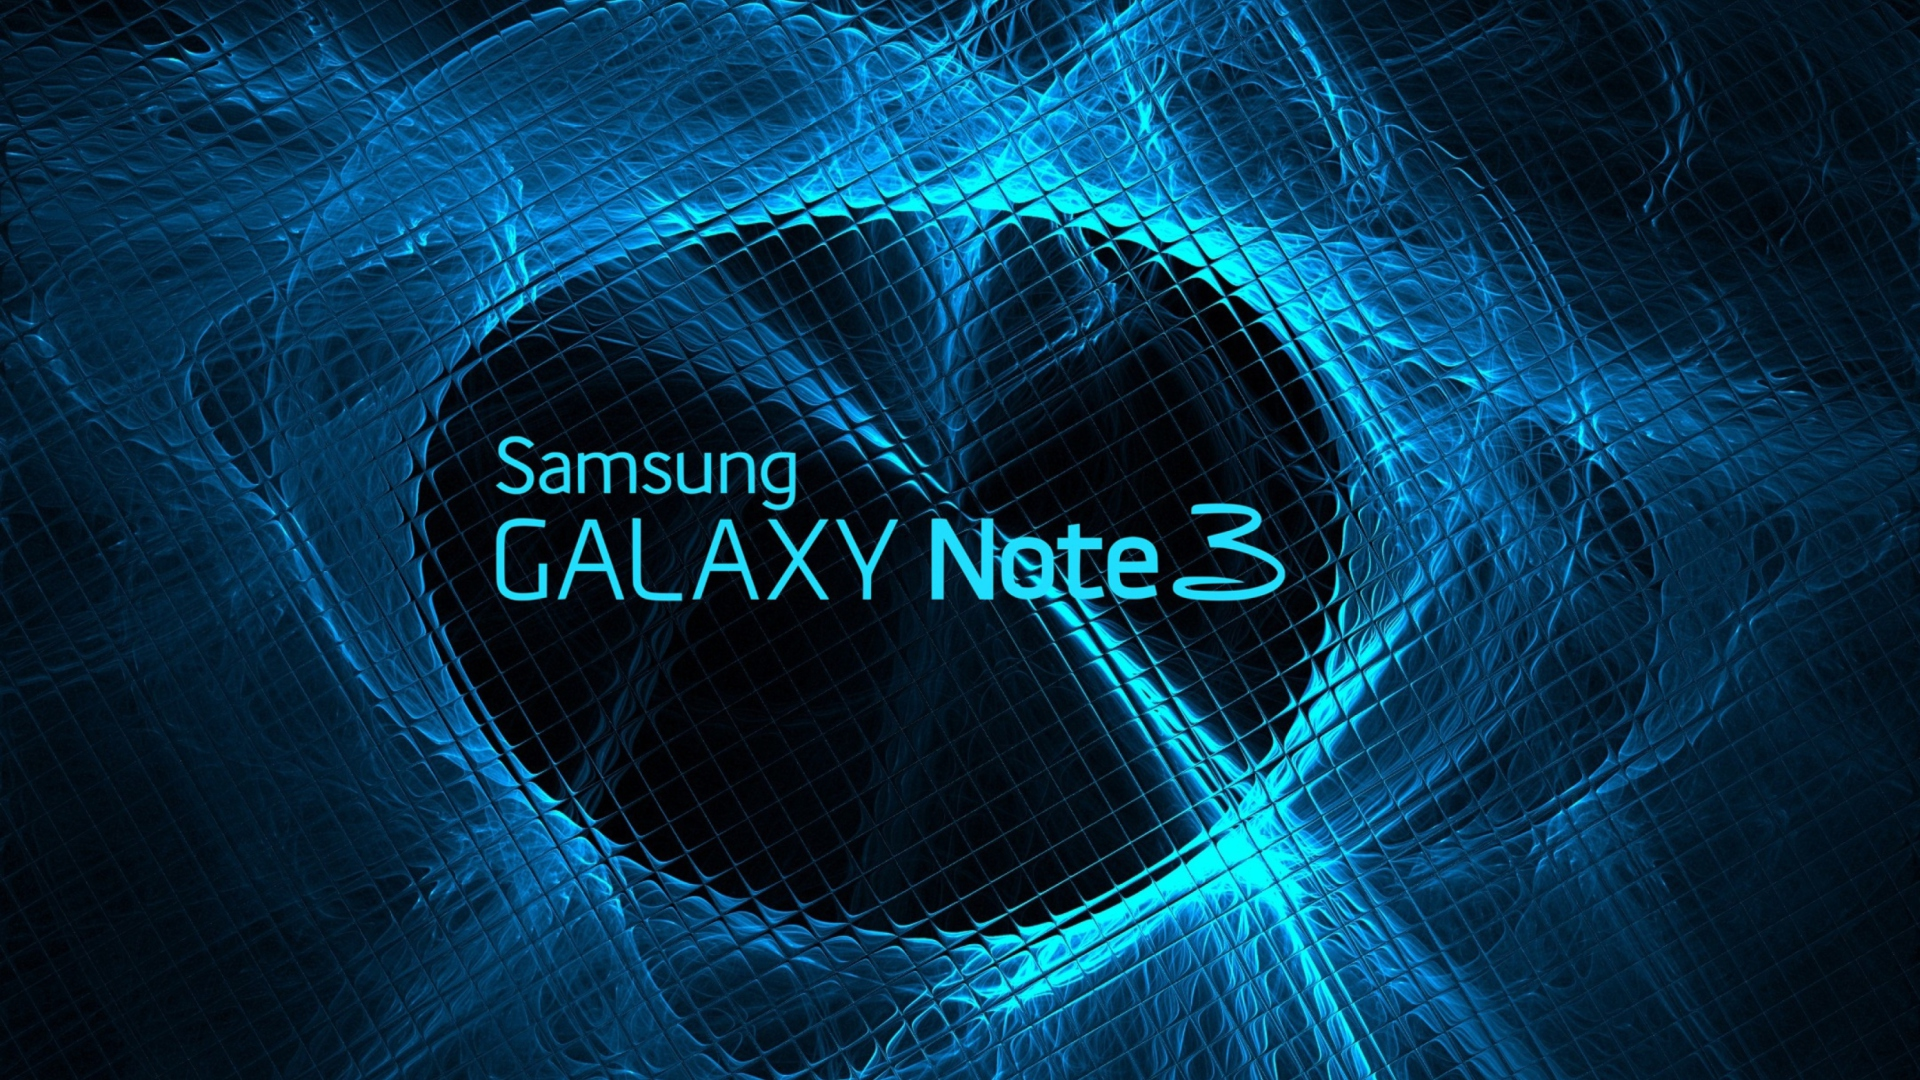 Samsung Galaxy Note 3 Wallpaper For 1920x1080